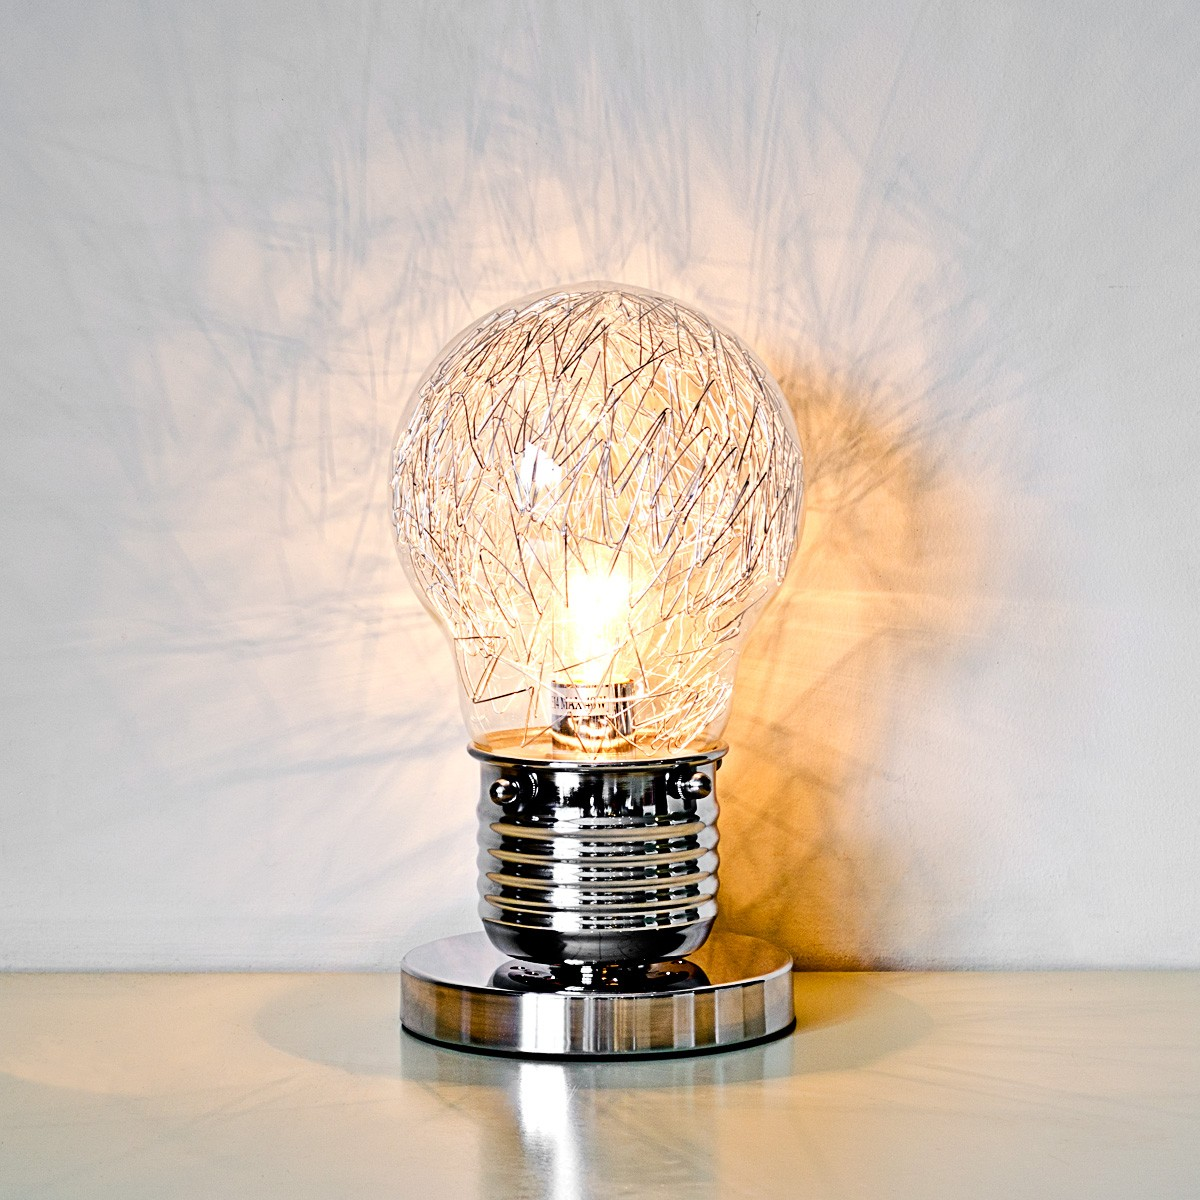 lightbulb lamp photo - 3